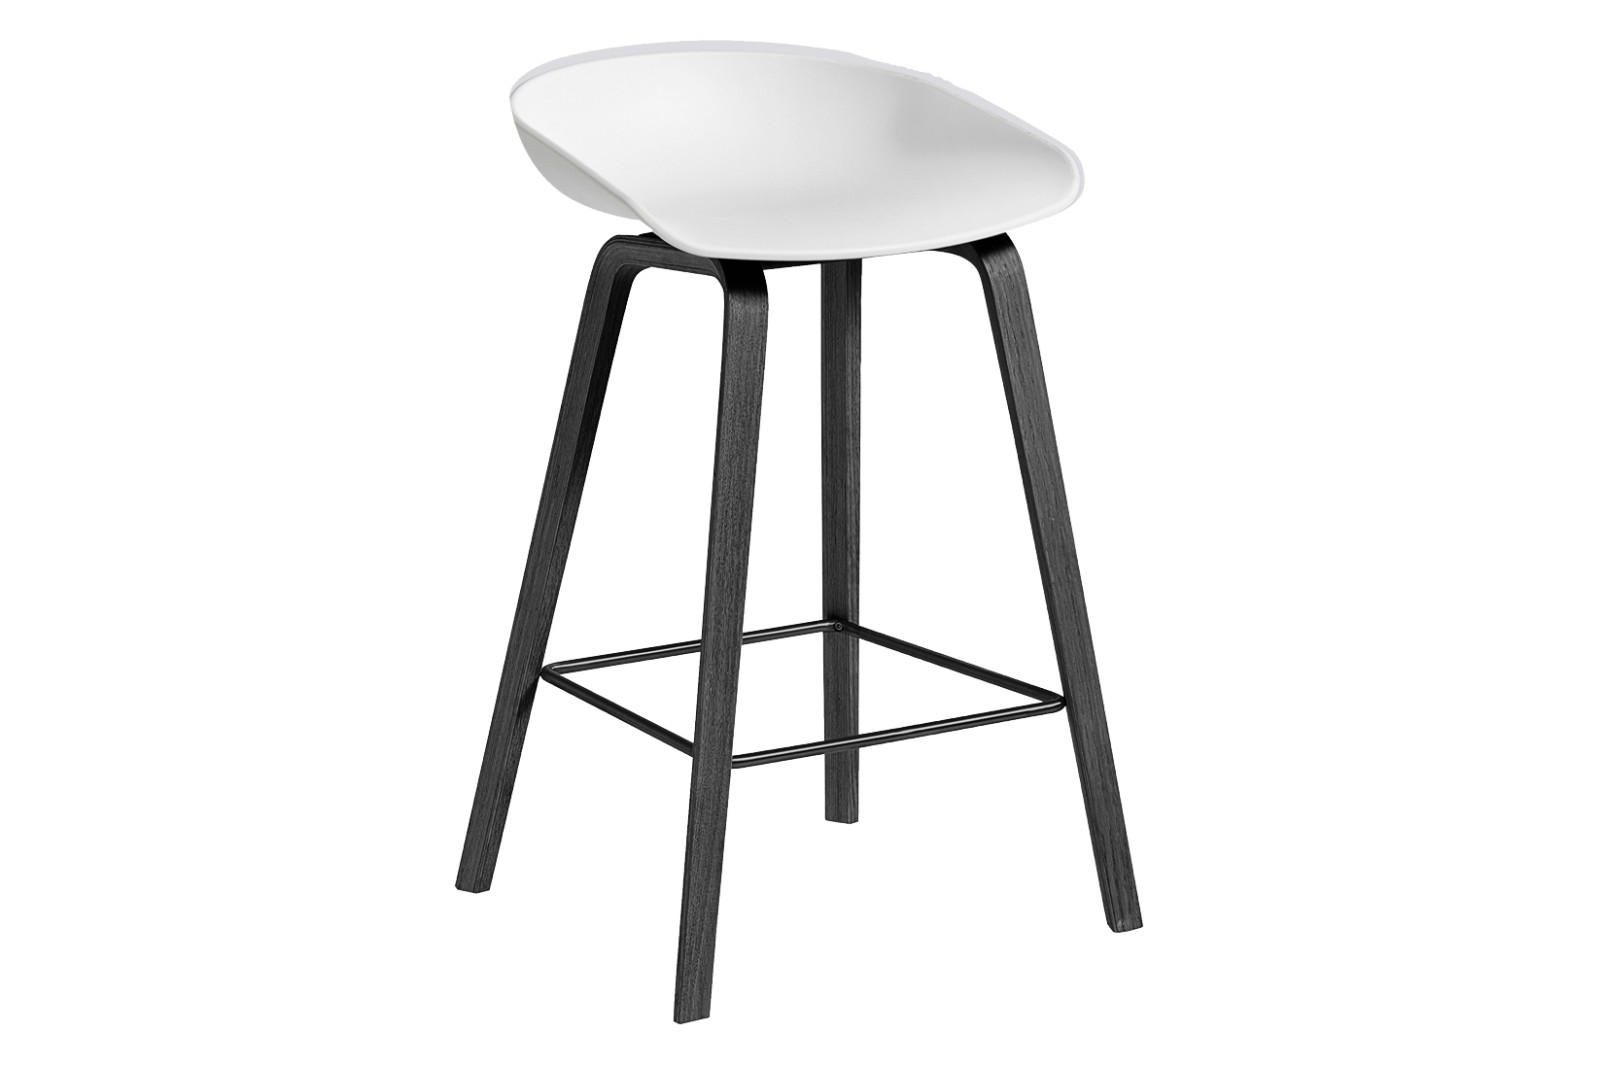 AAS 32 Low Stool Plastic White, Wood Black Oak, Metal Black